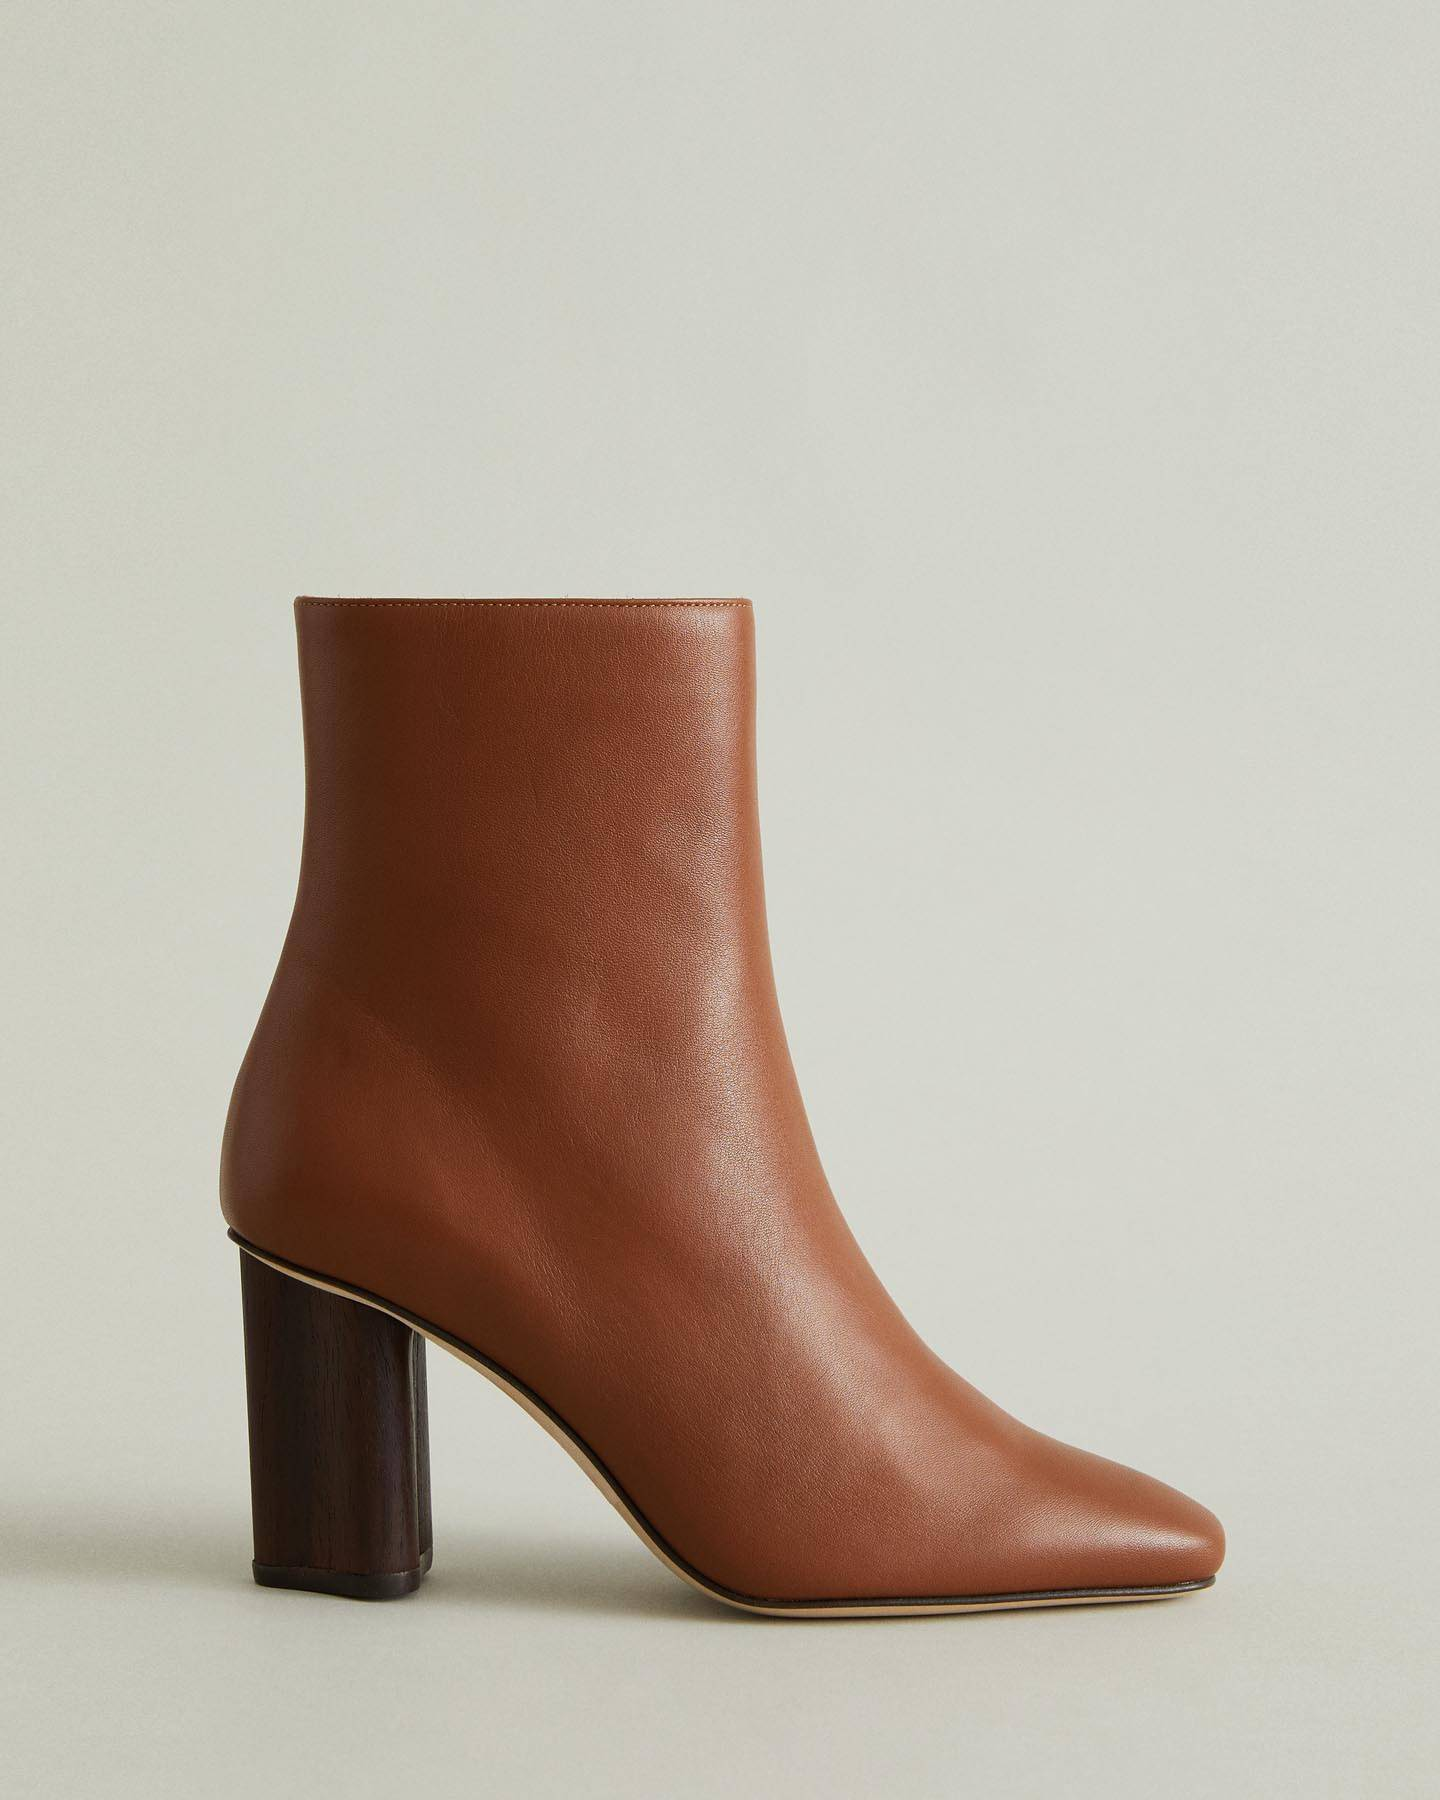 https://ca.wantapothecary.com/products/lisa-heeled-ankle-boot-1?utm_medium=wlesite